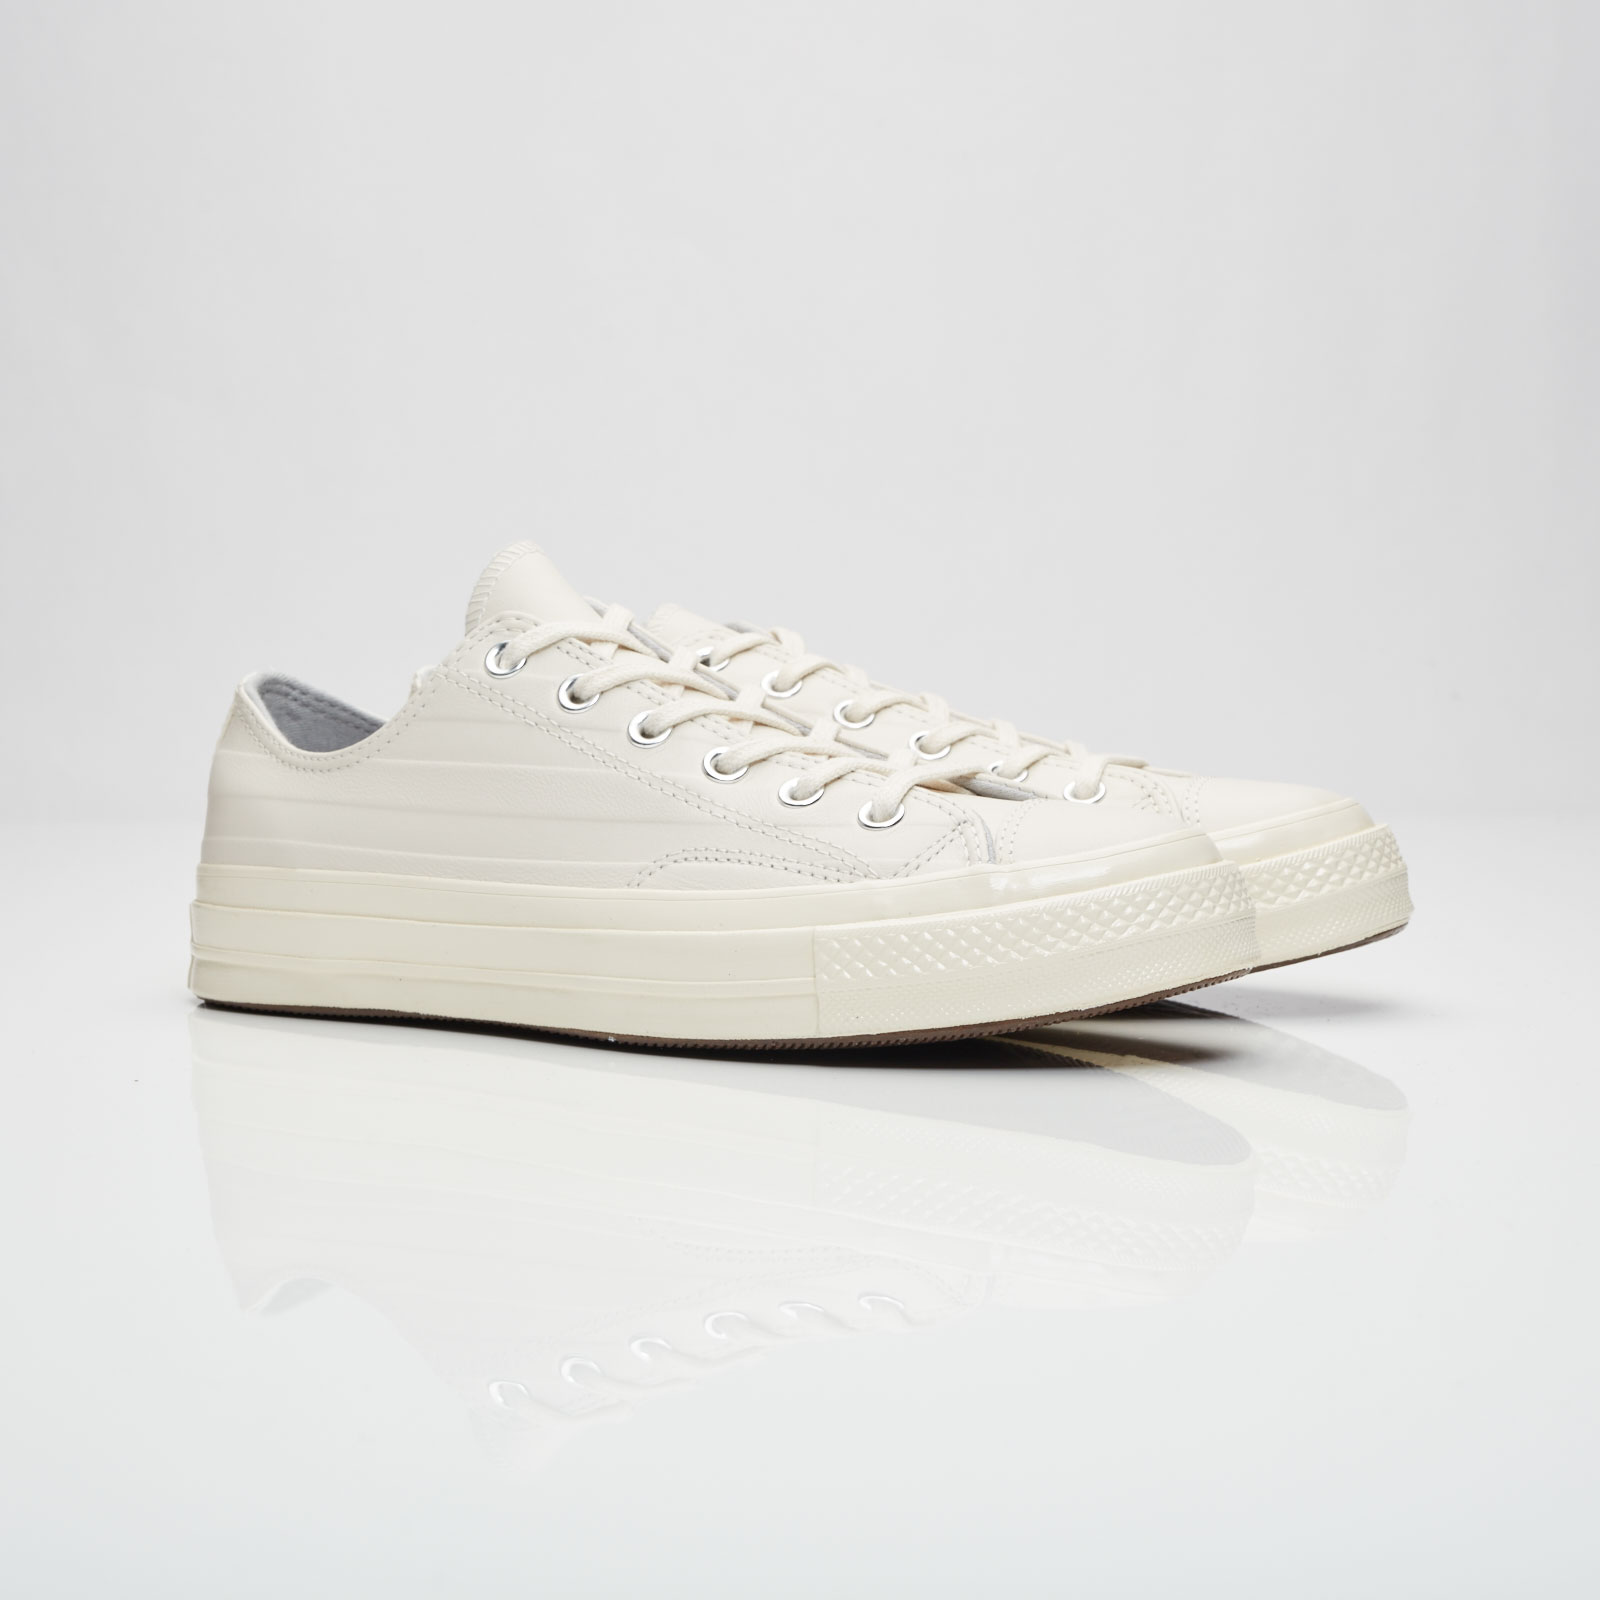 efd971aed558b5 Converse Chuck Taylor All Star 70s Ox - 153837c - Sneakersnstuff ...